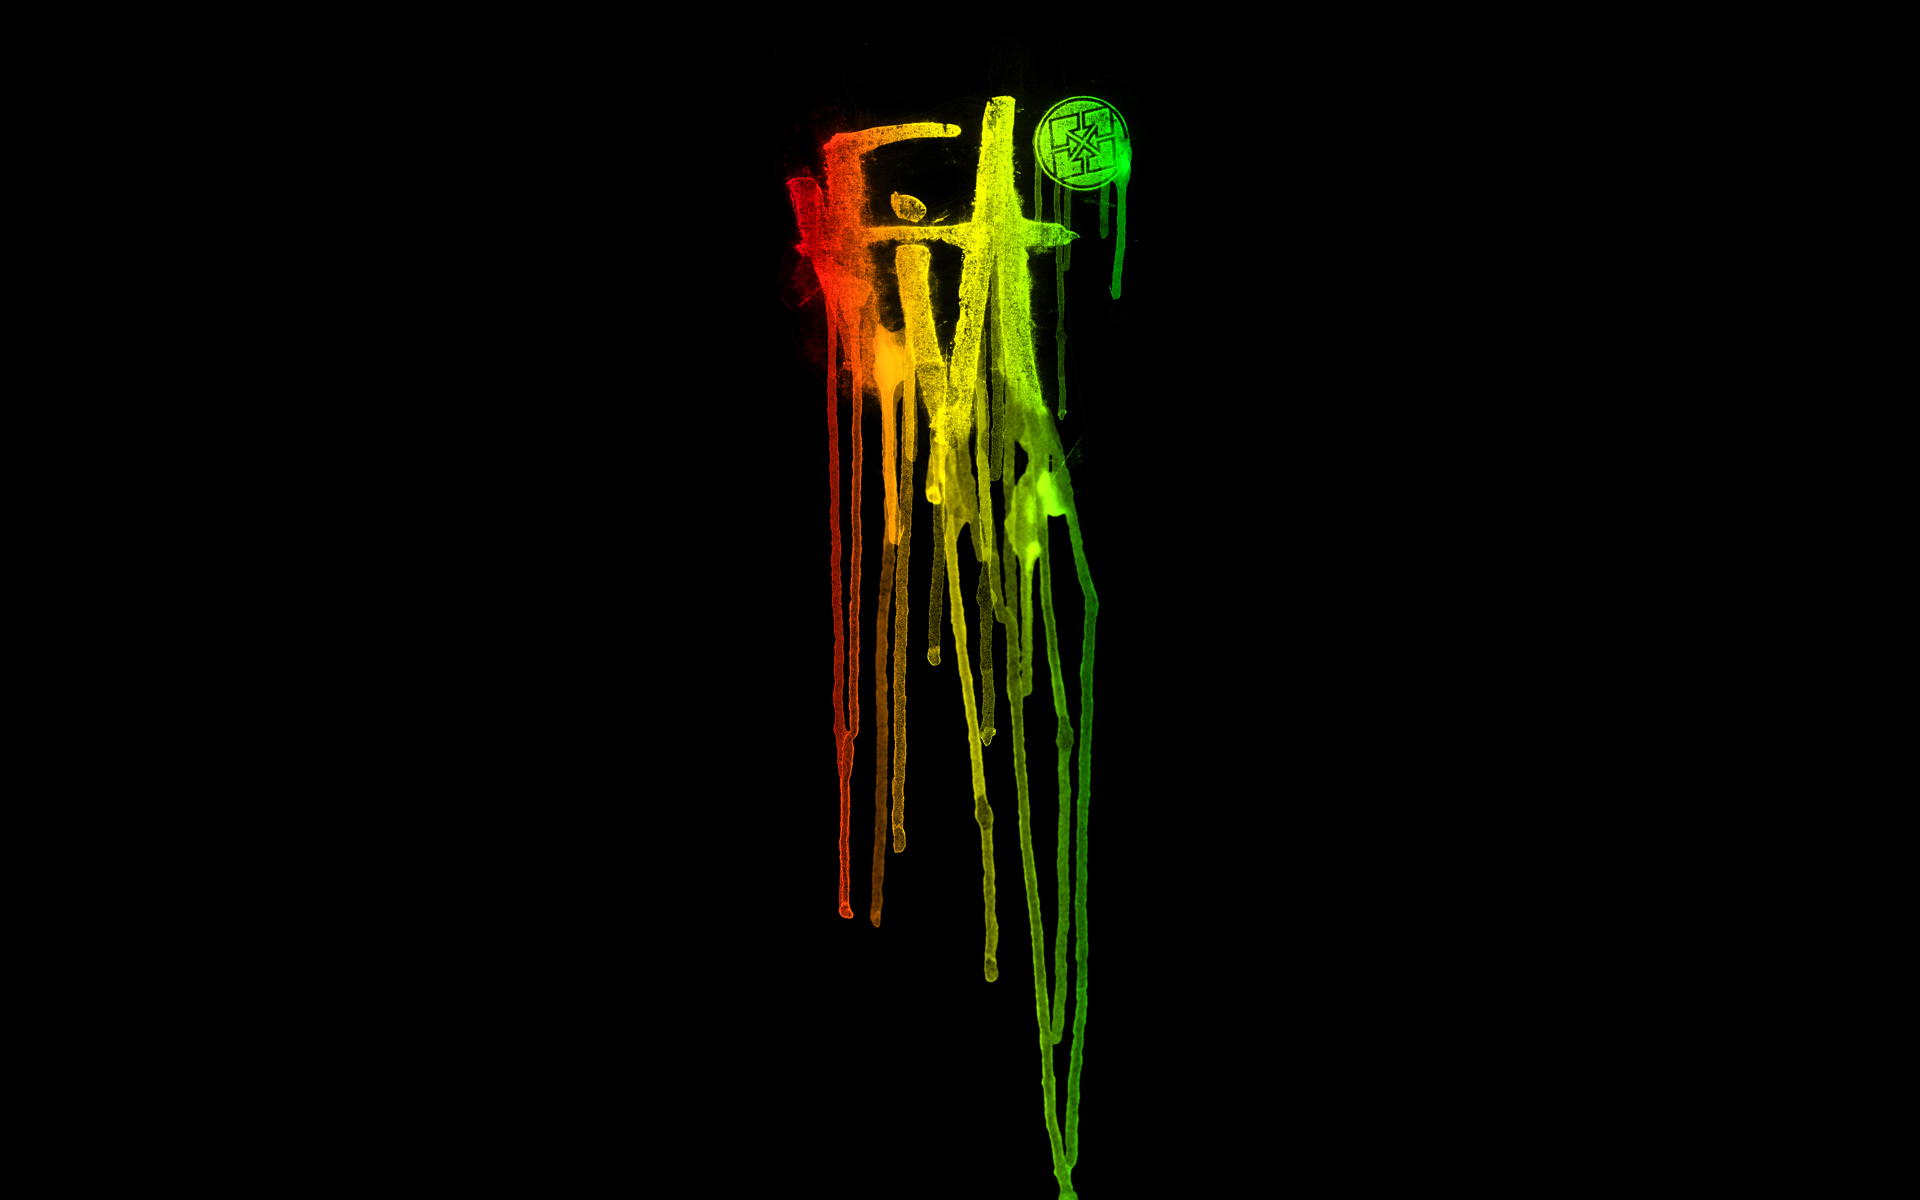 RASTA DRIP WALLPAPER. >